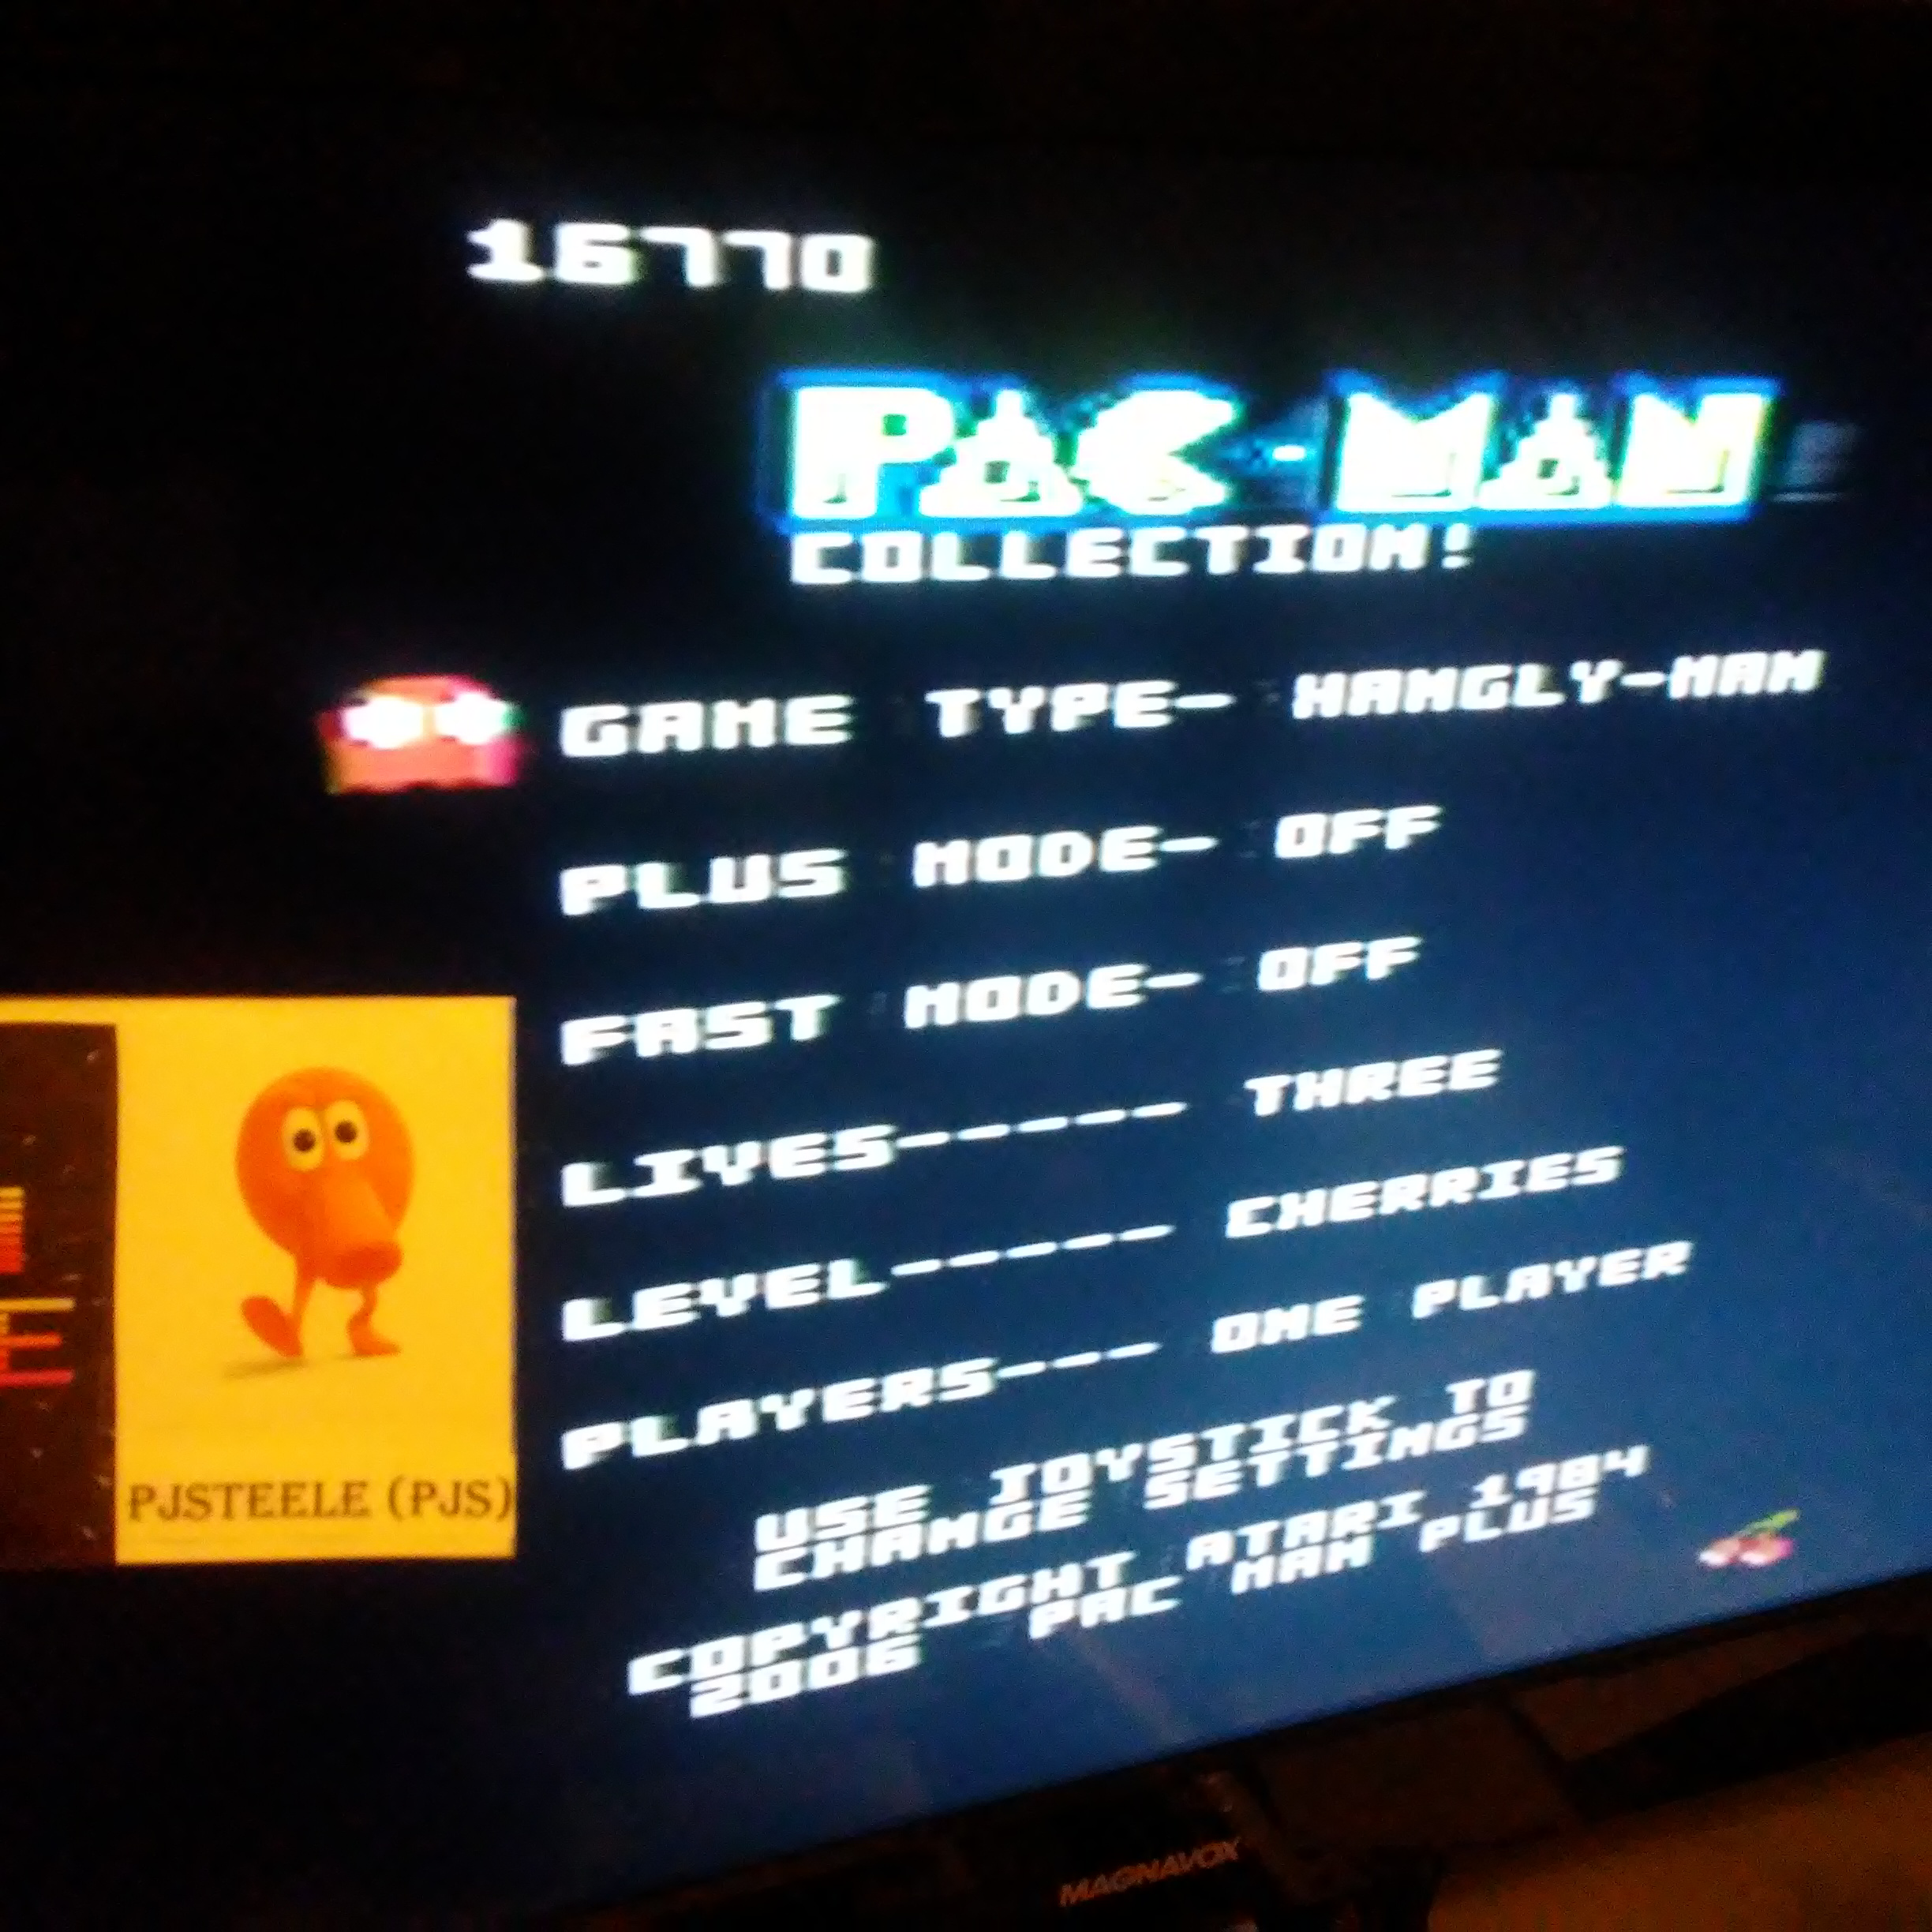 Pjsteele: Pac-Man Collection: Hangly Man [Cherries/Plus Off/Fast Off] (Atari 7800) 16,770 points on 2018-06-29 21:12:43